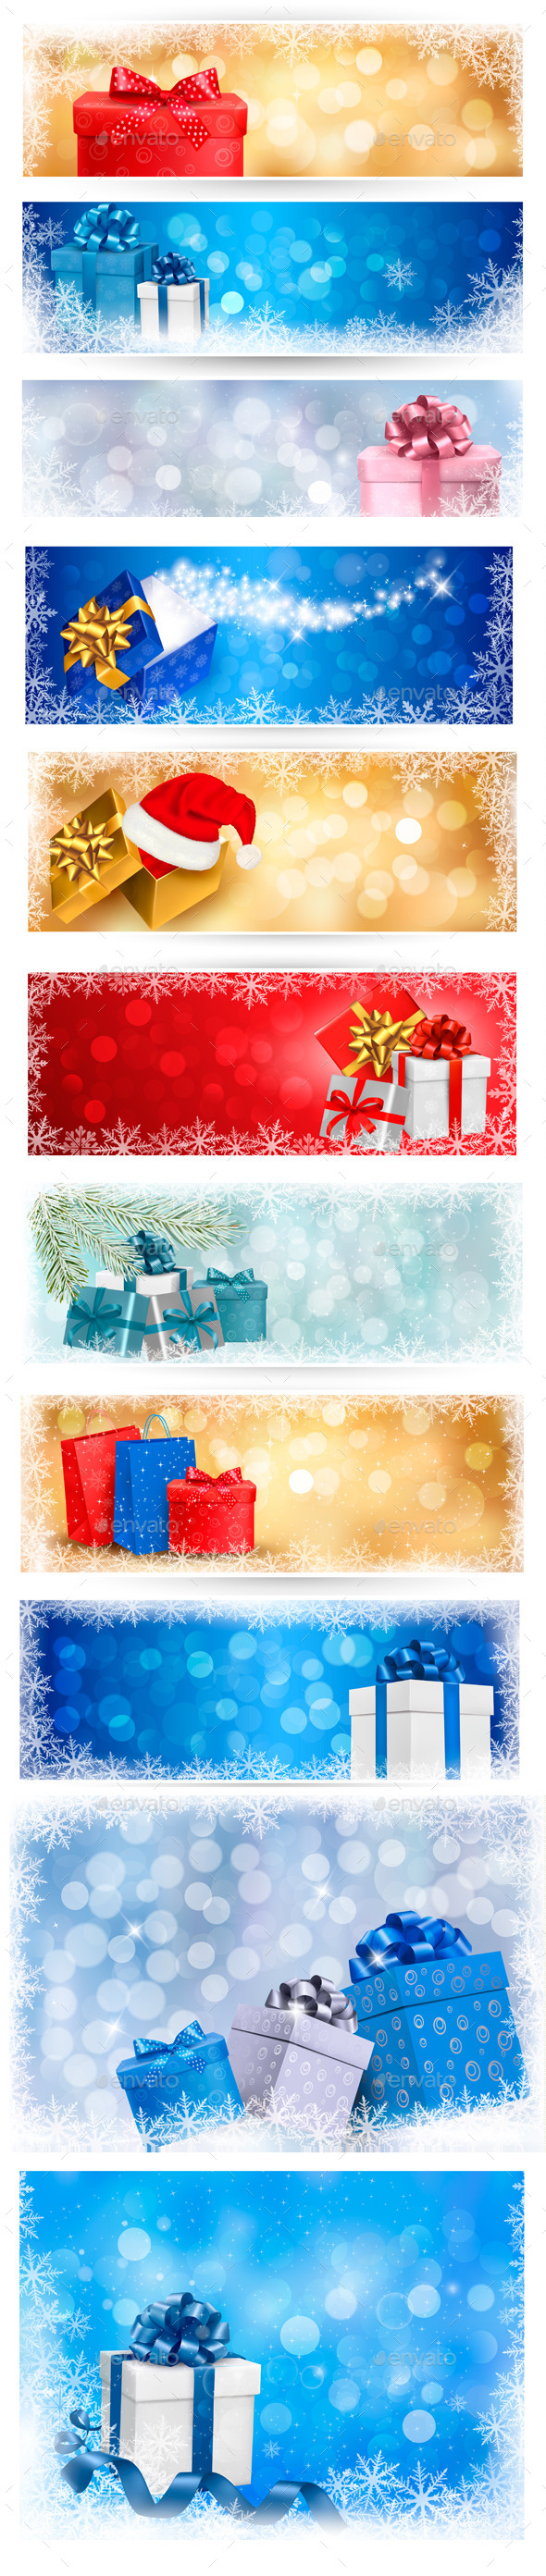 Christmas Backgrounds and Banners Bundle - Christmas Seasons/Holidays